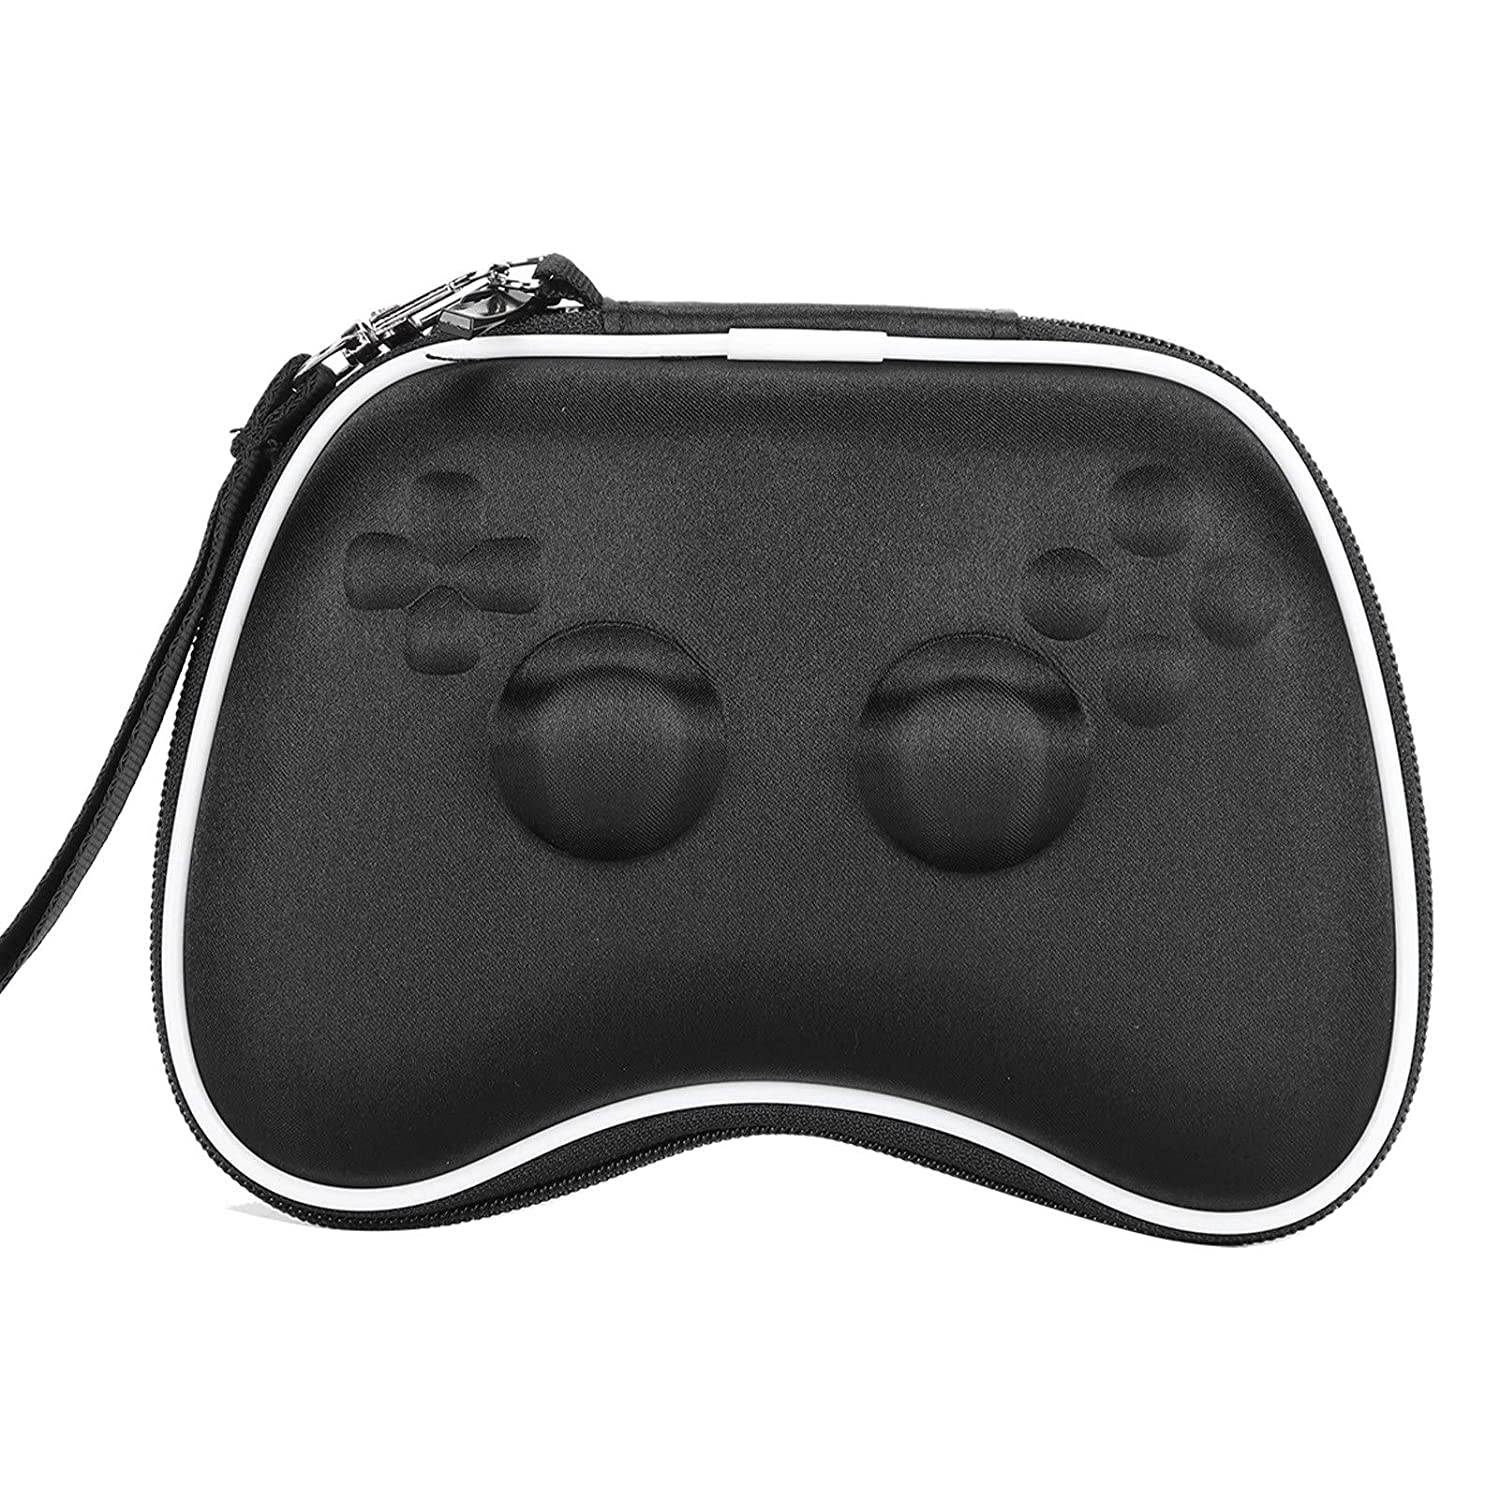 Shockproof Gamepad Bag Max 61% OFF EVA Branded goods Case Carrying Anti‑Kno